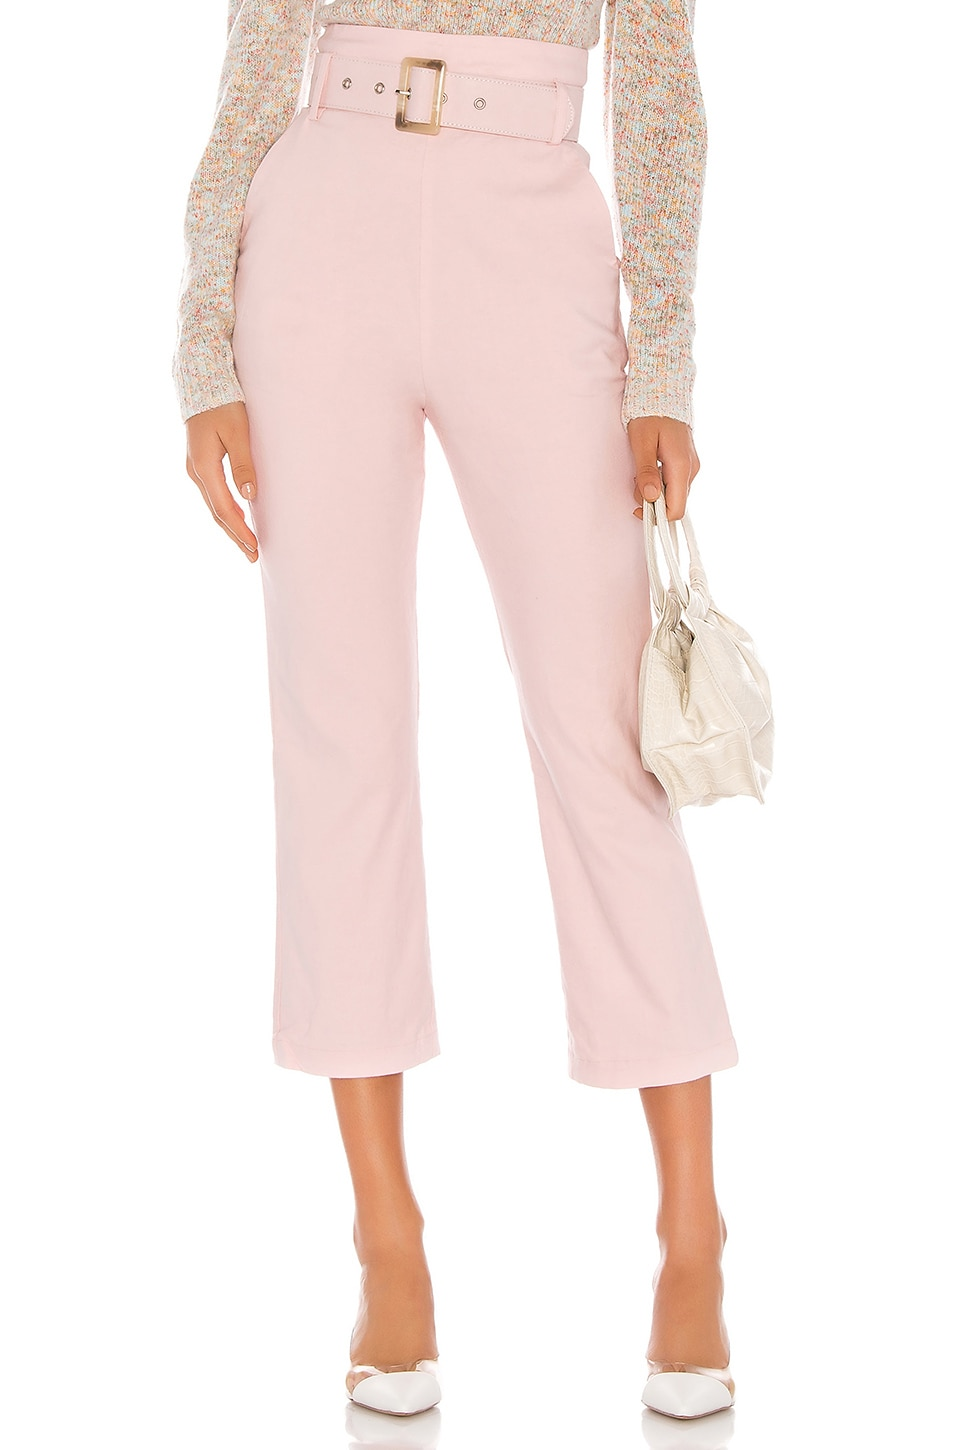 MAJORELLE Camden Pant in Blush Pink